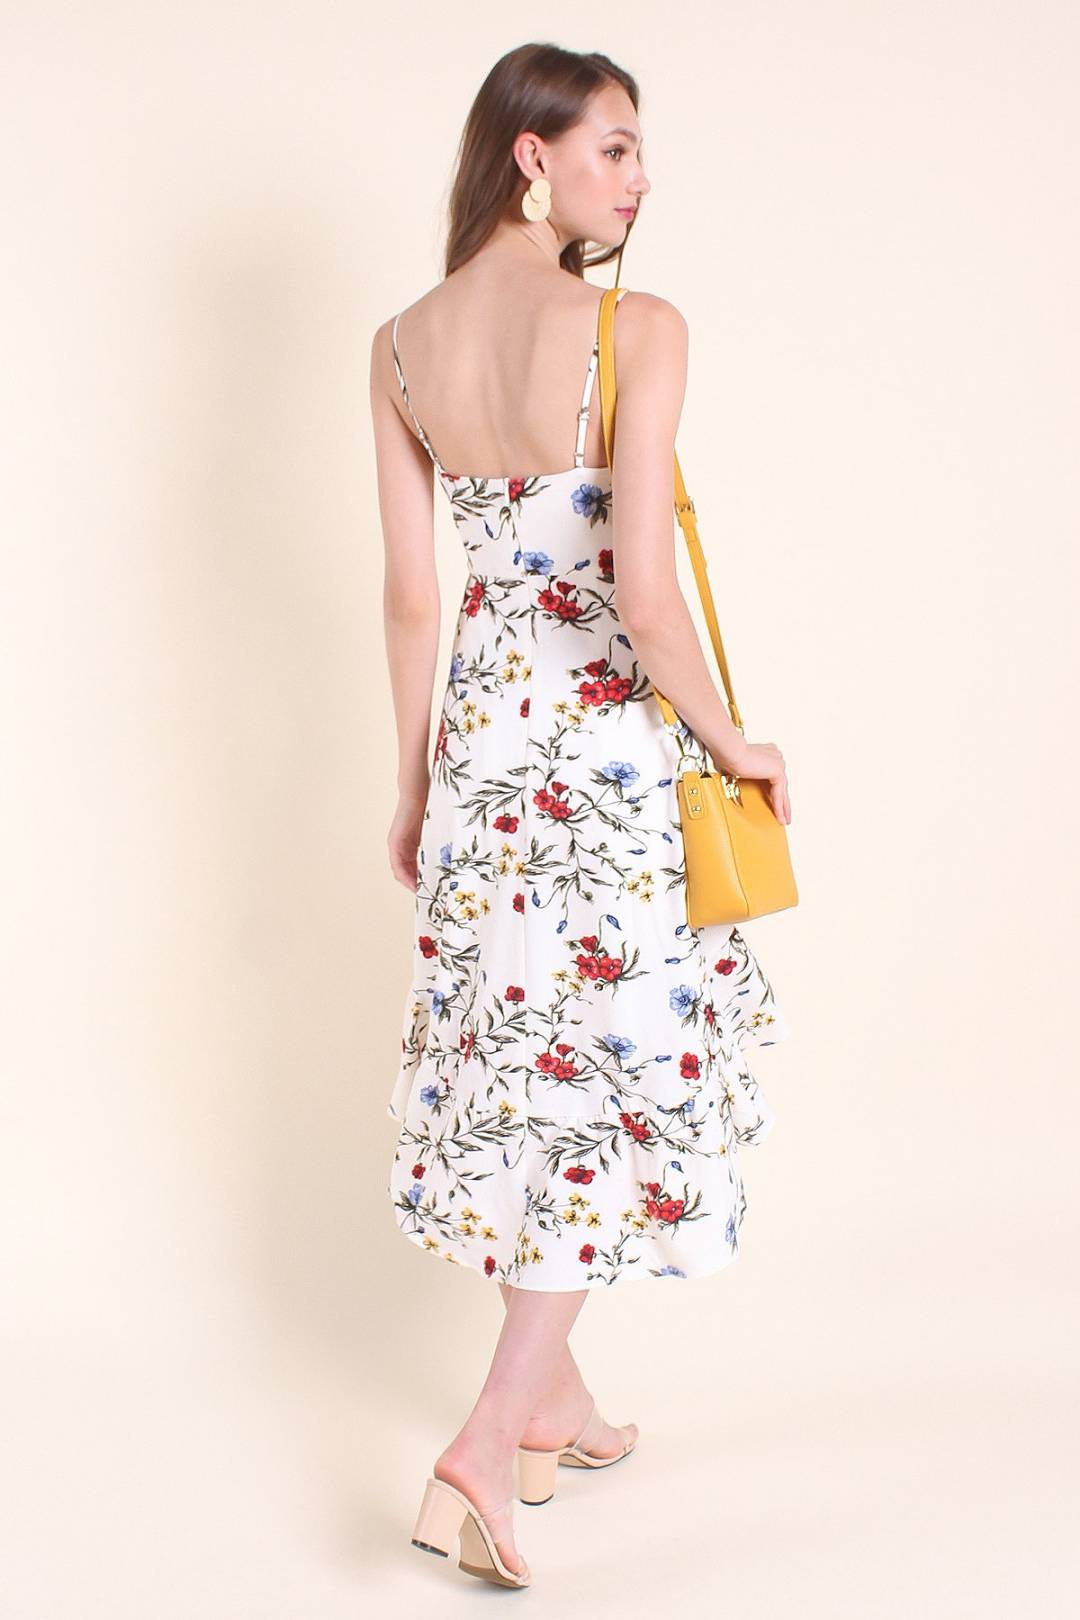 MADEBYNM ALDERS HIGH-LOW FLORALS SPAG MIDI DRESS IN WHITE [XS/S/M/L/XL]